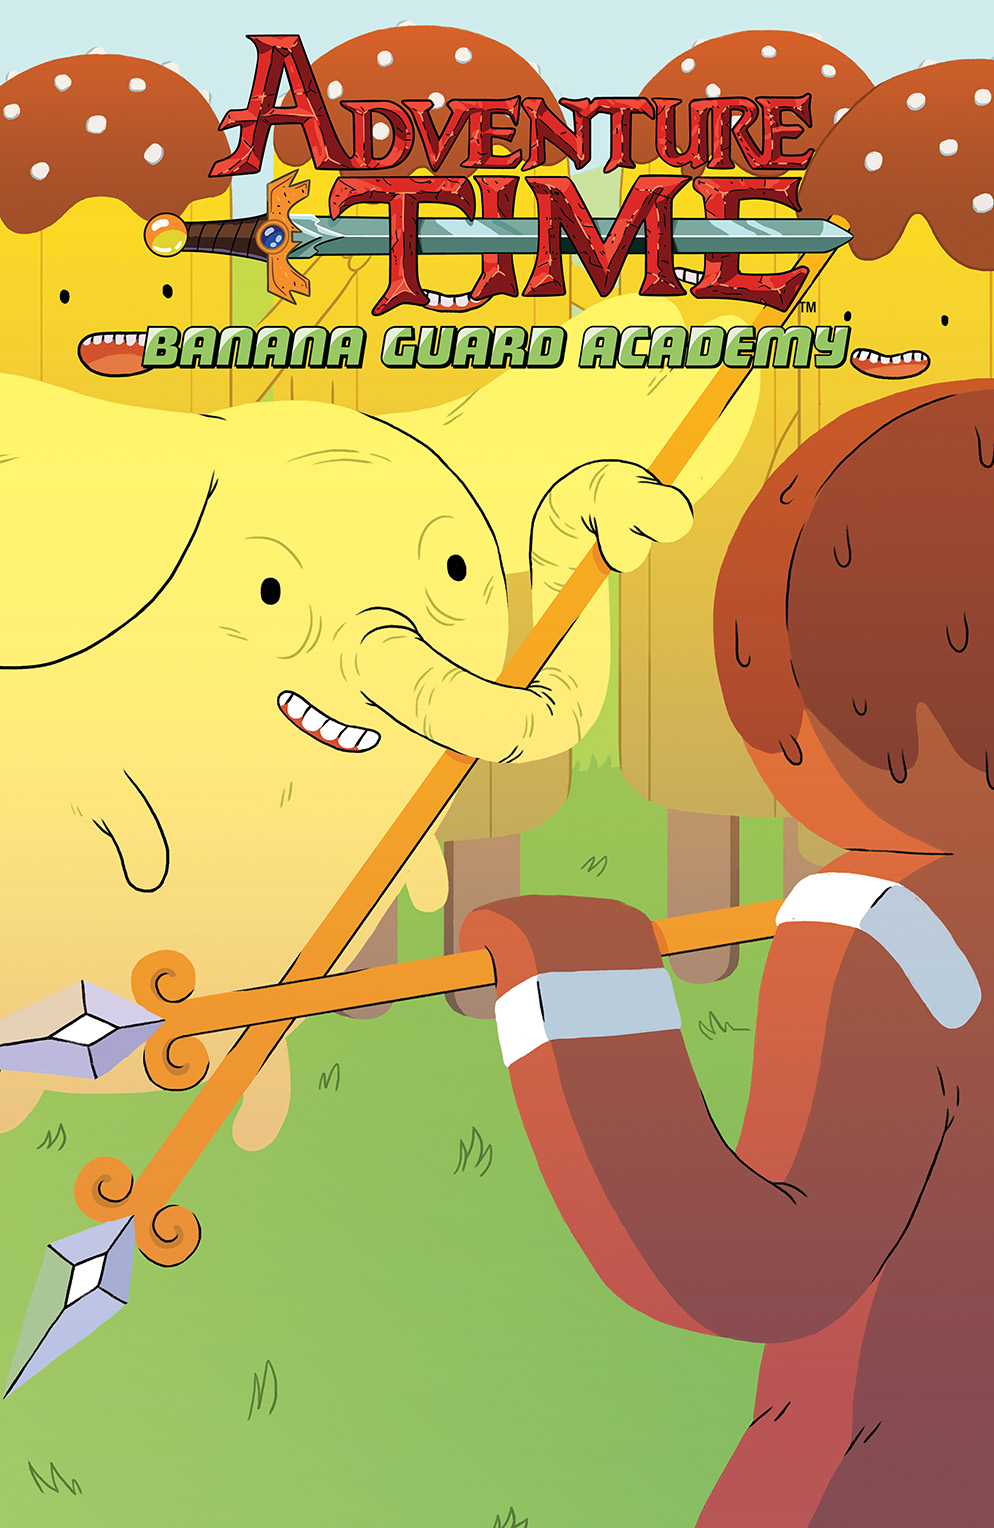 ADVENTURE TIME: BANANA GUARD ACADEMY #4 Cover A